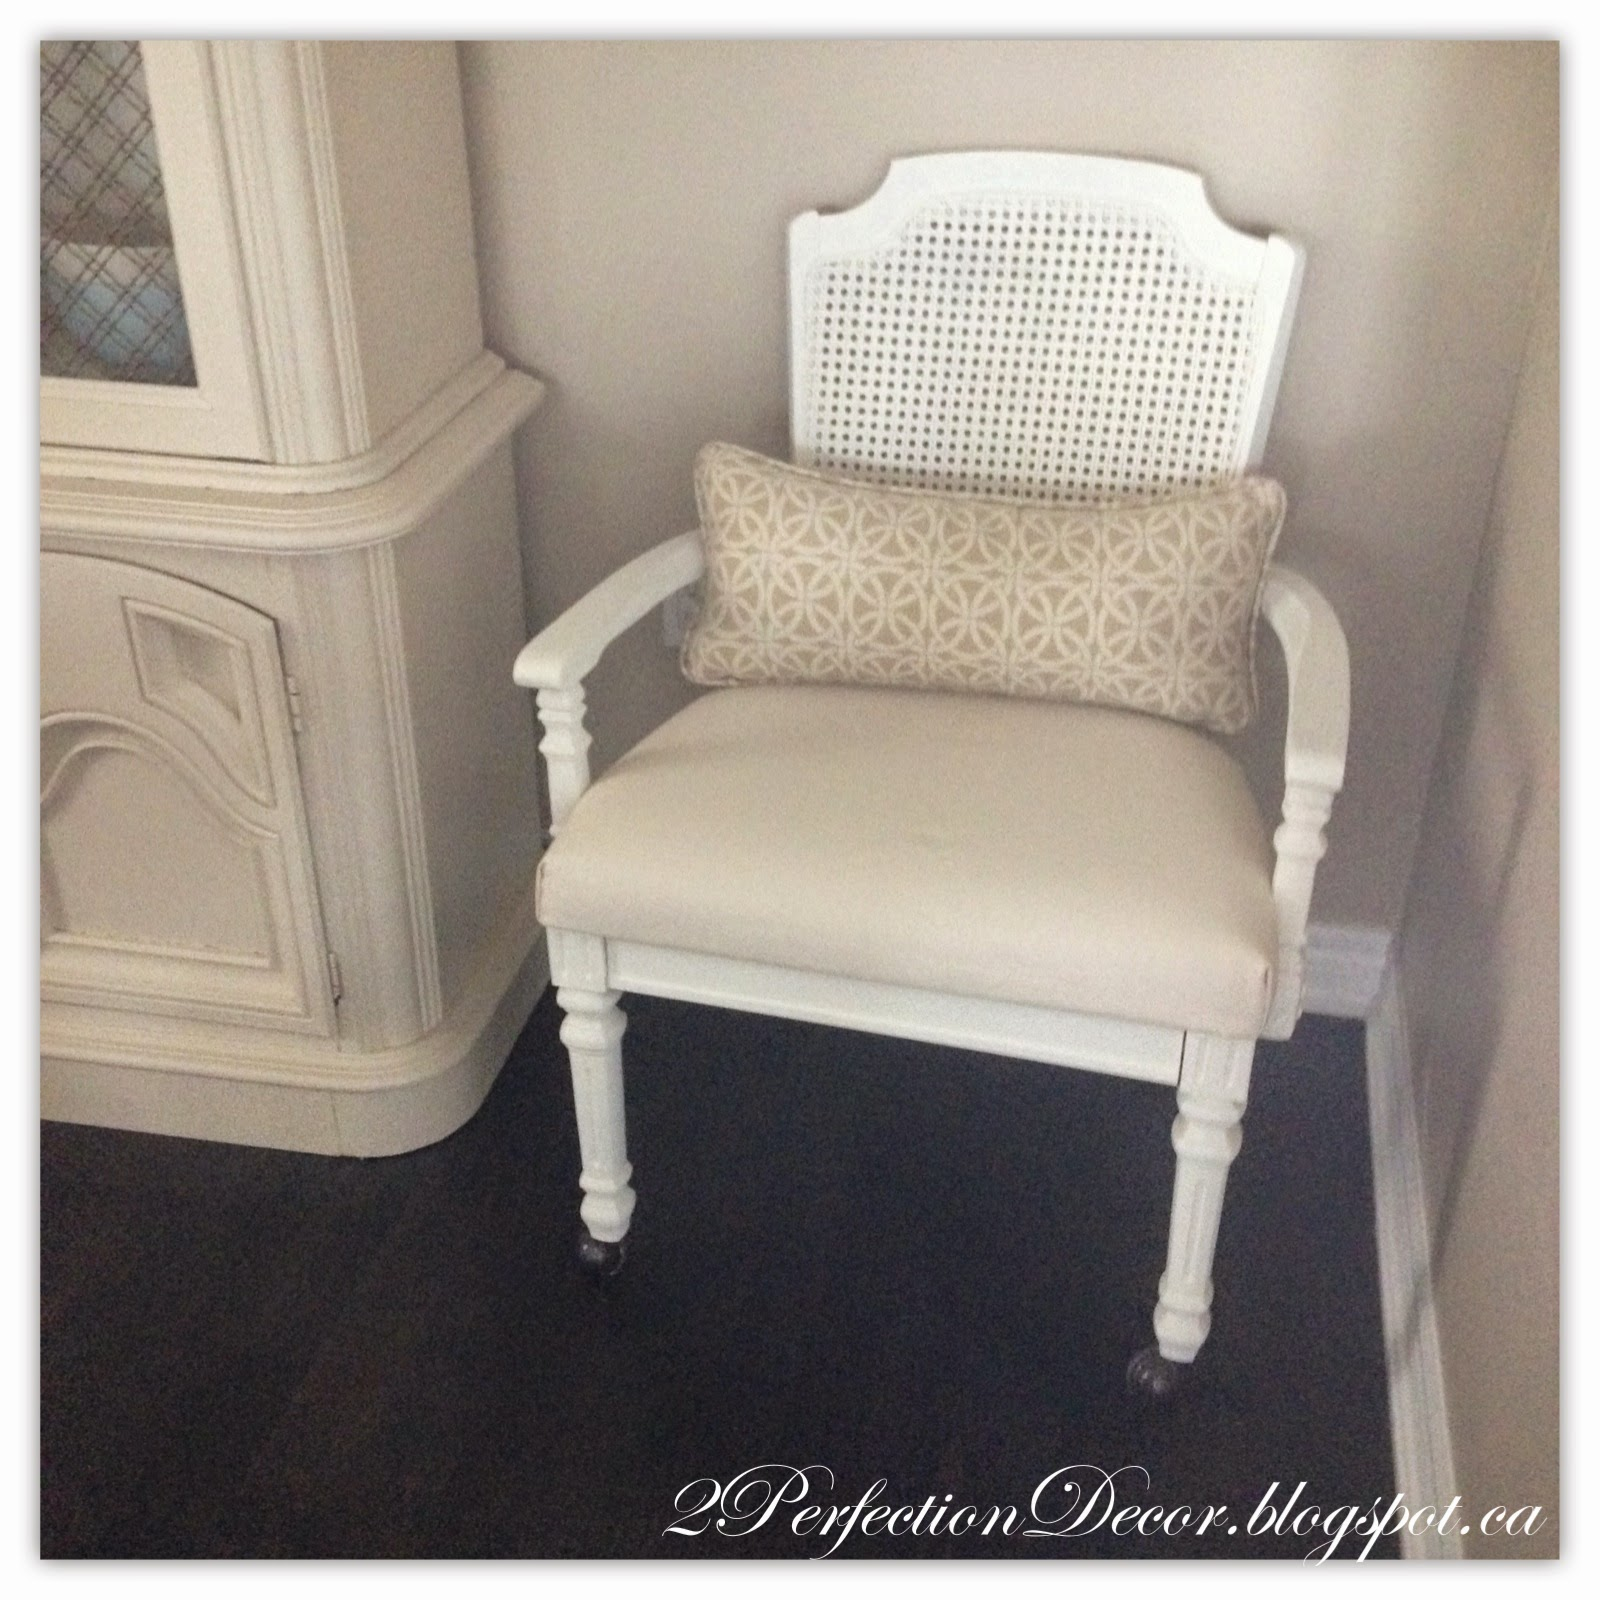 2Perfection Decor French Provincial Chair Makeover